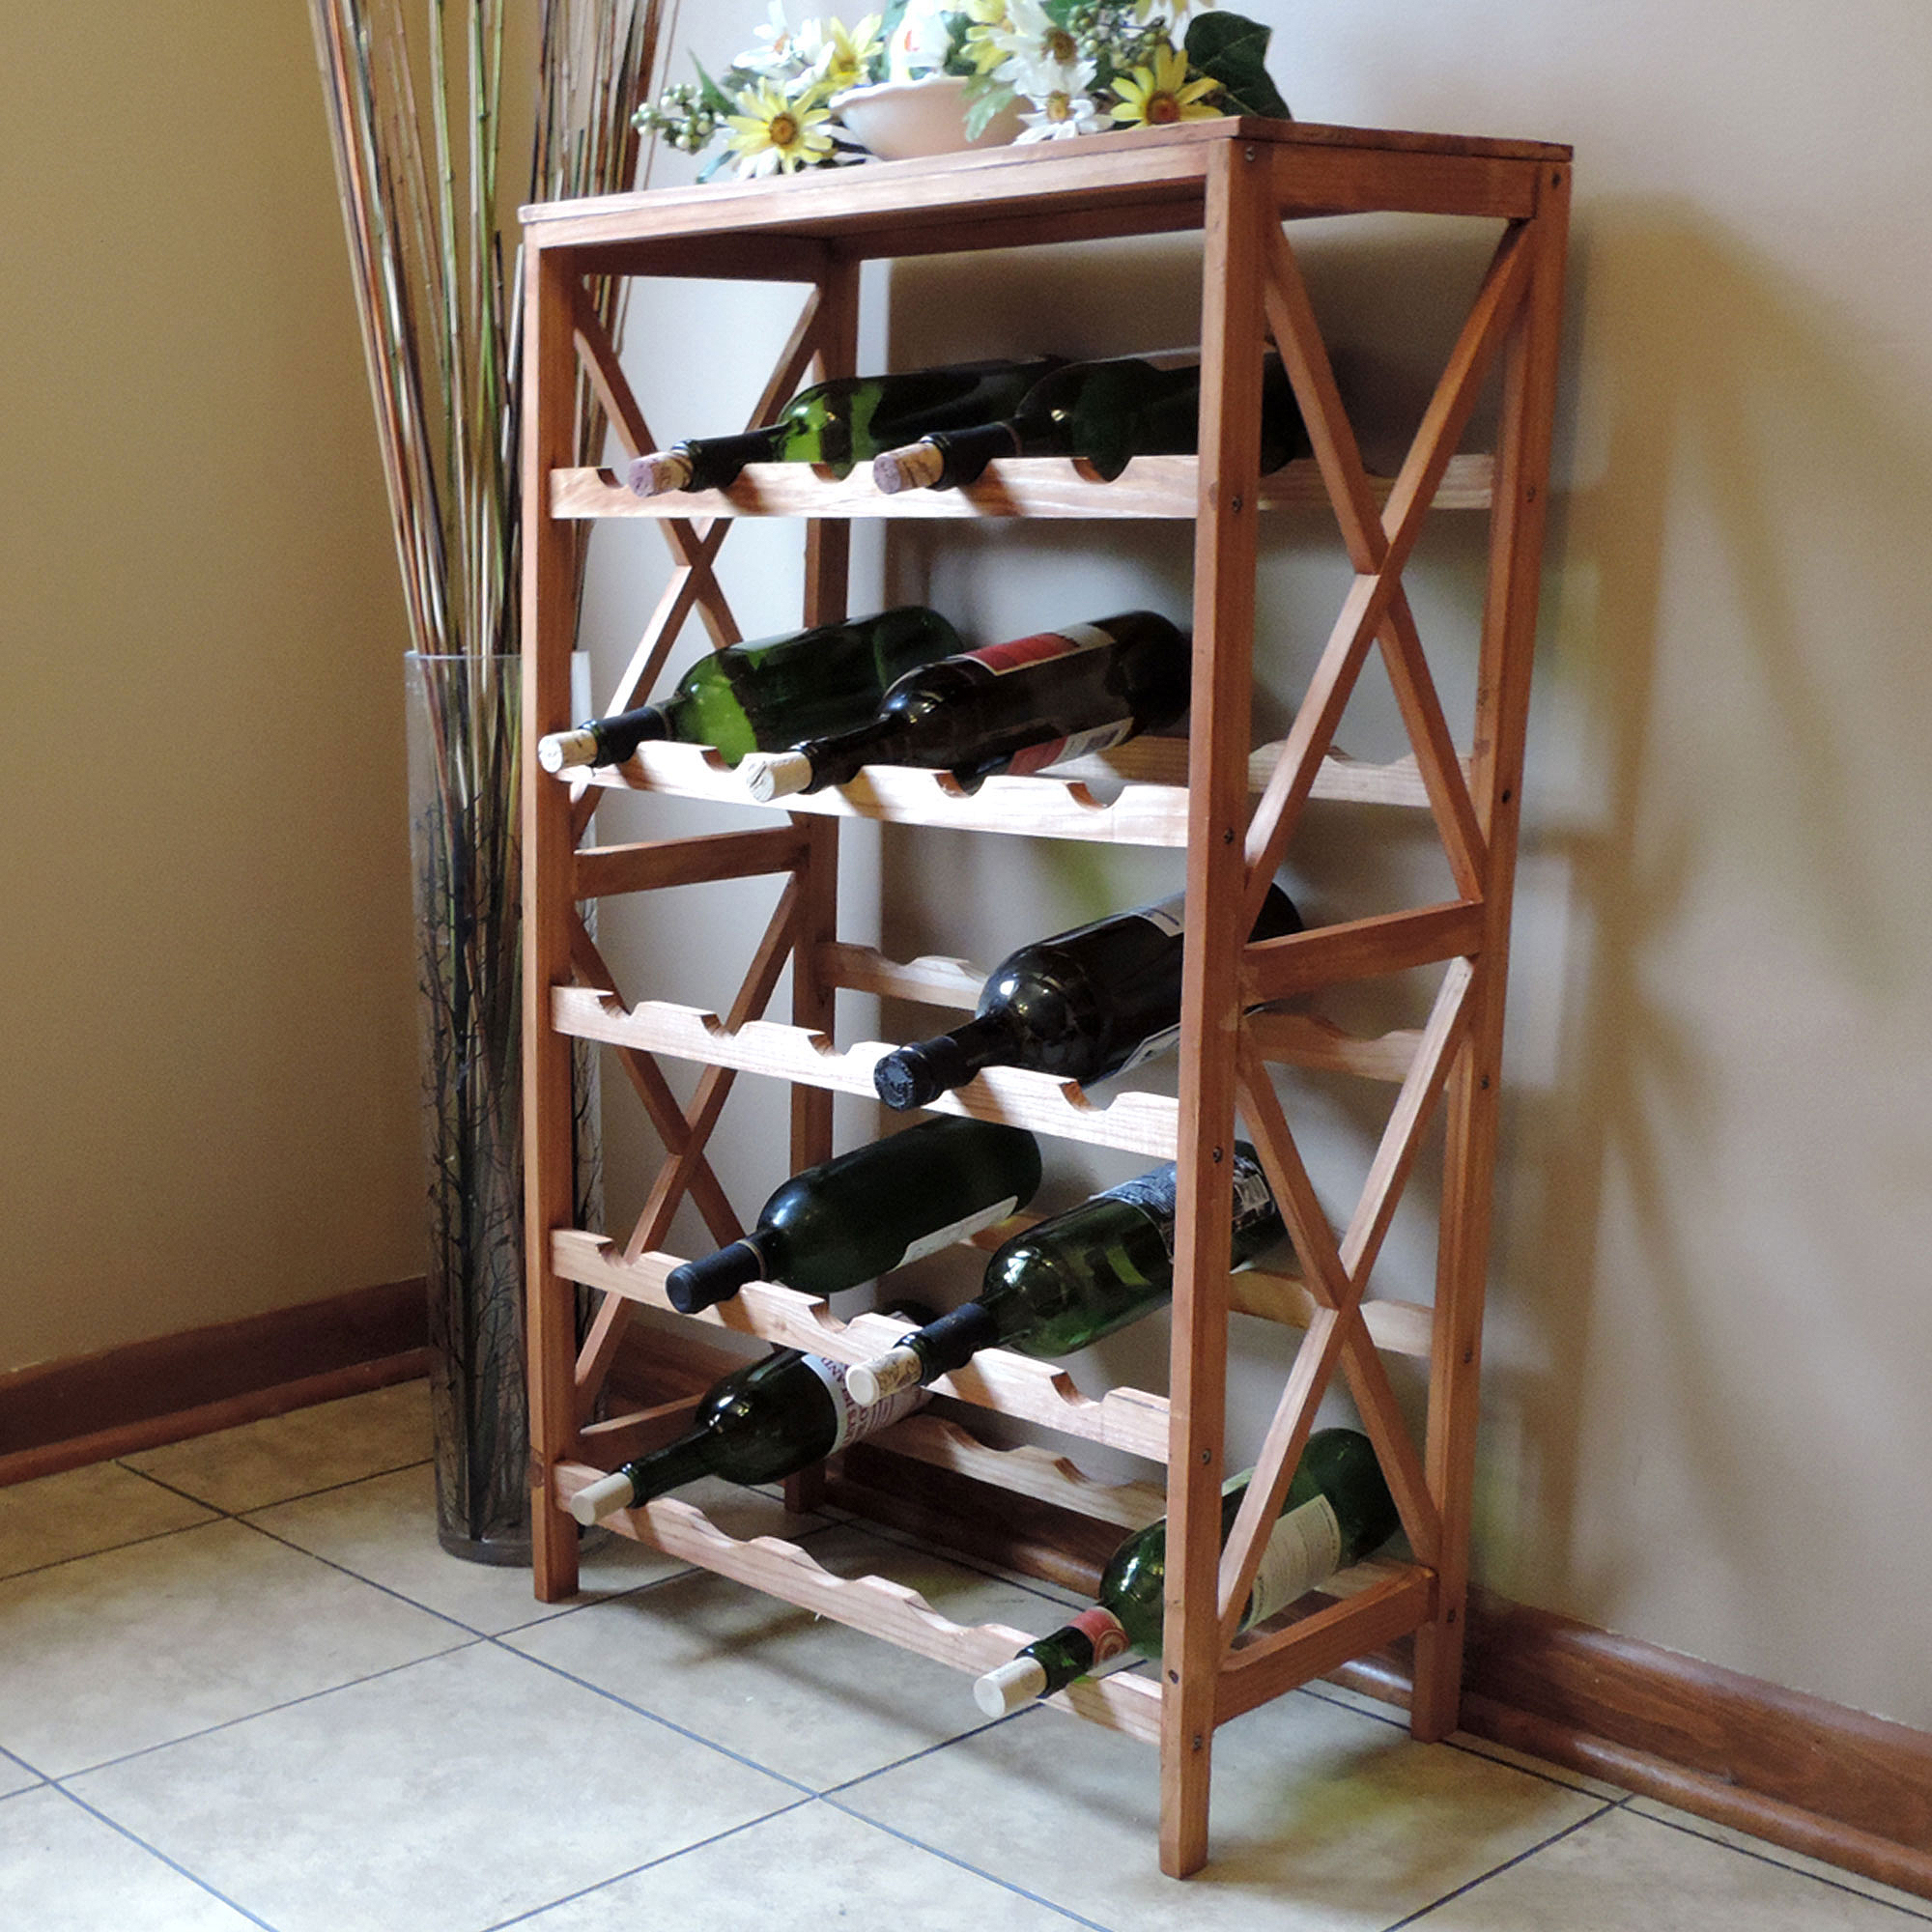 Lavish Home Classic Rustic Wood 25-Bottle Wine Rack